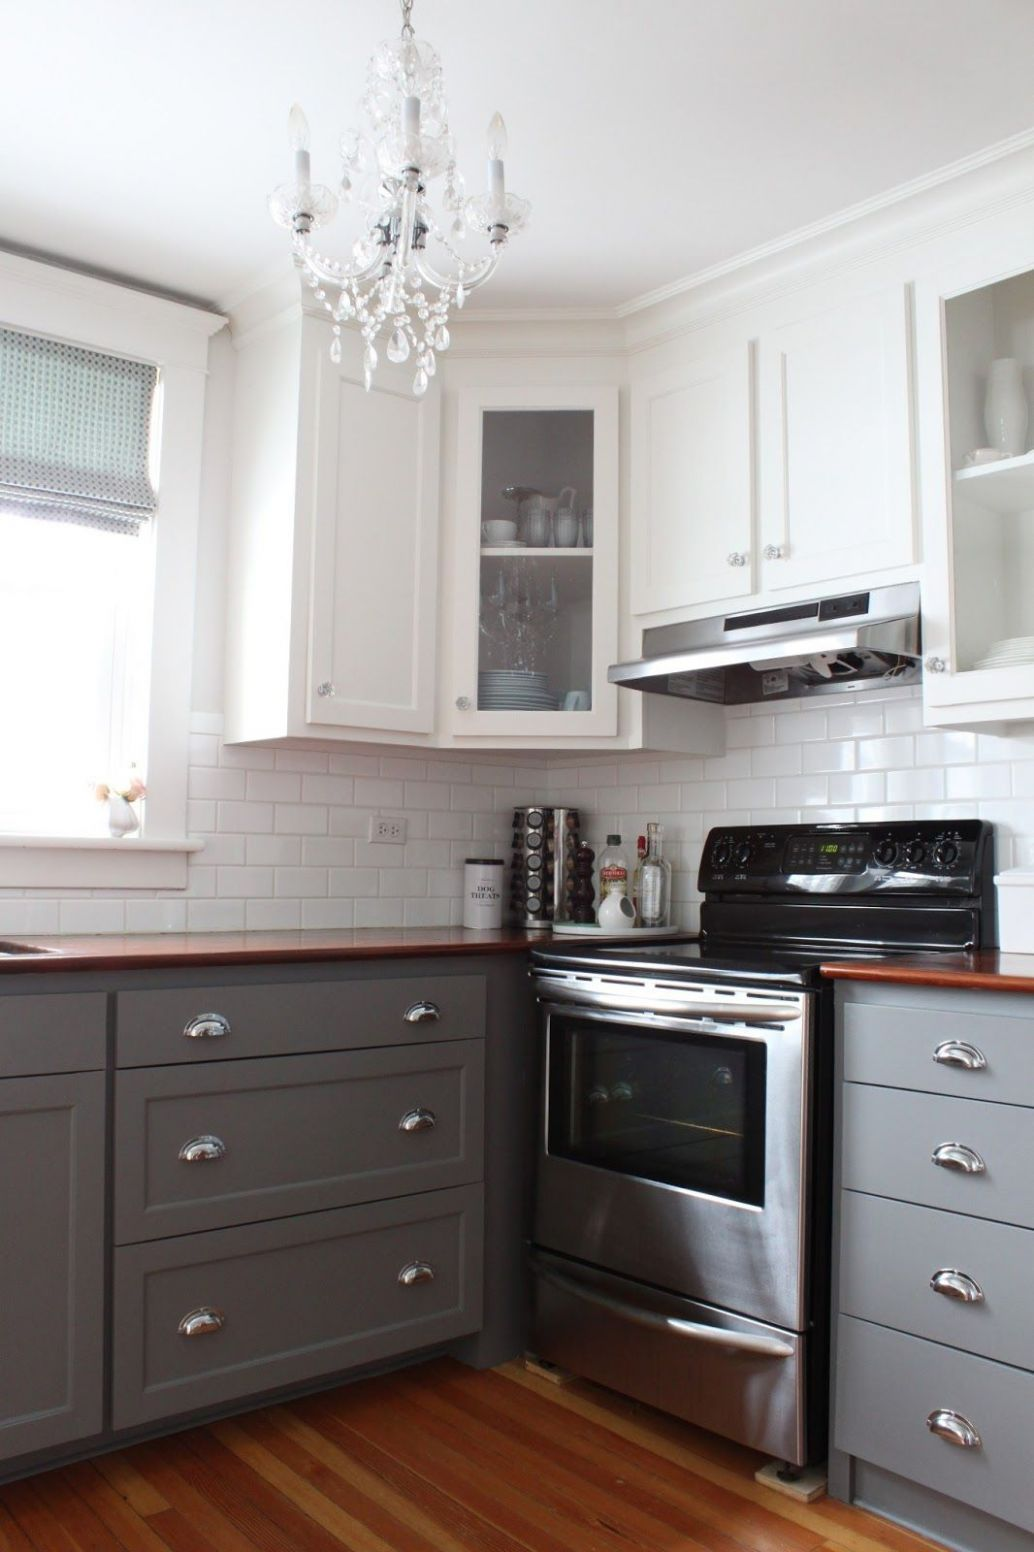 Two-Tone Cabinets Reveal. (With images) | Gray and white kitchen ..